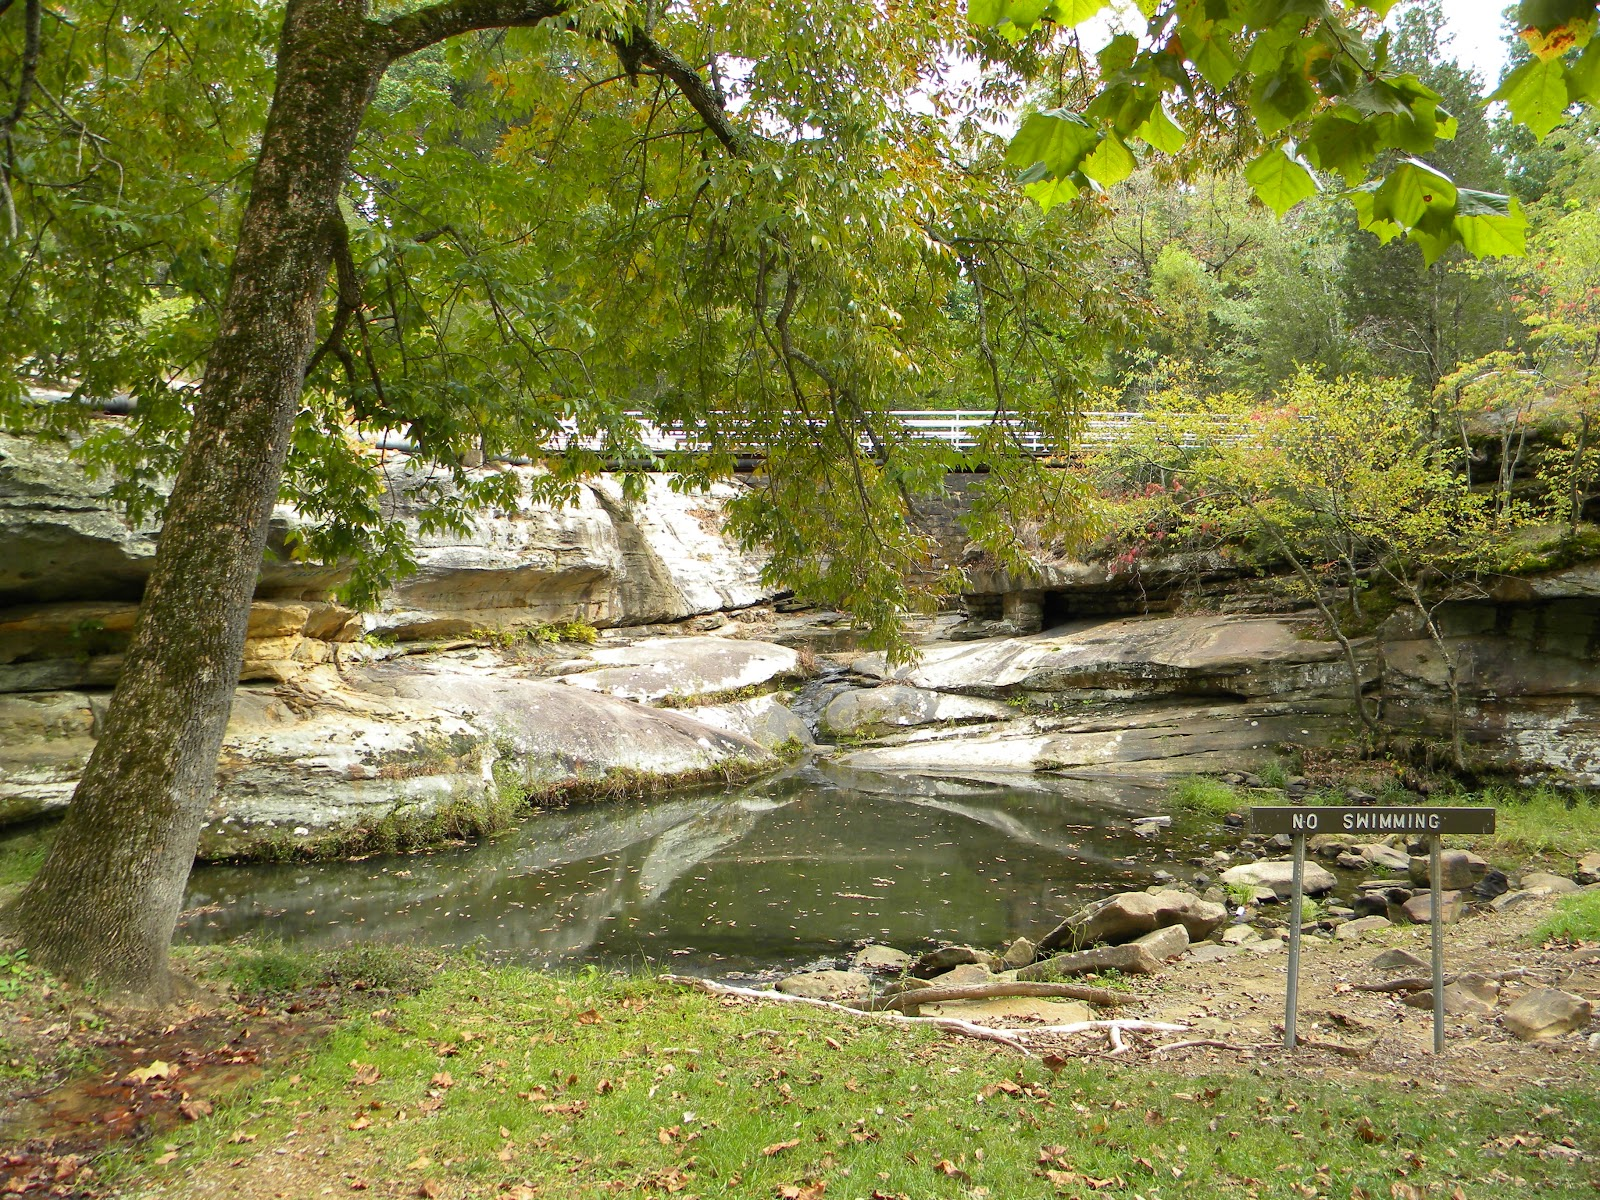 dixon springs Search dixon springs, tennessee real estate listings & new homes for sale in dixon springs, tn find dixon springs houses, townhouses, condos, & properties for sale at weichertcom.